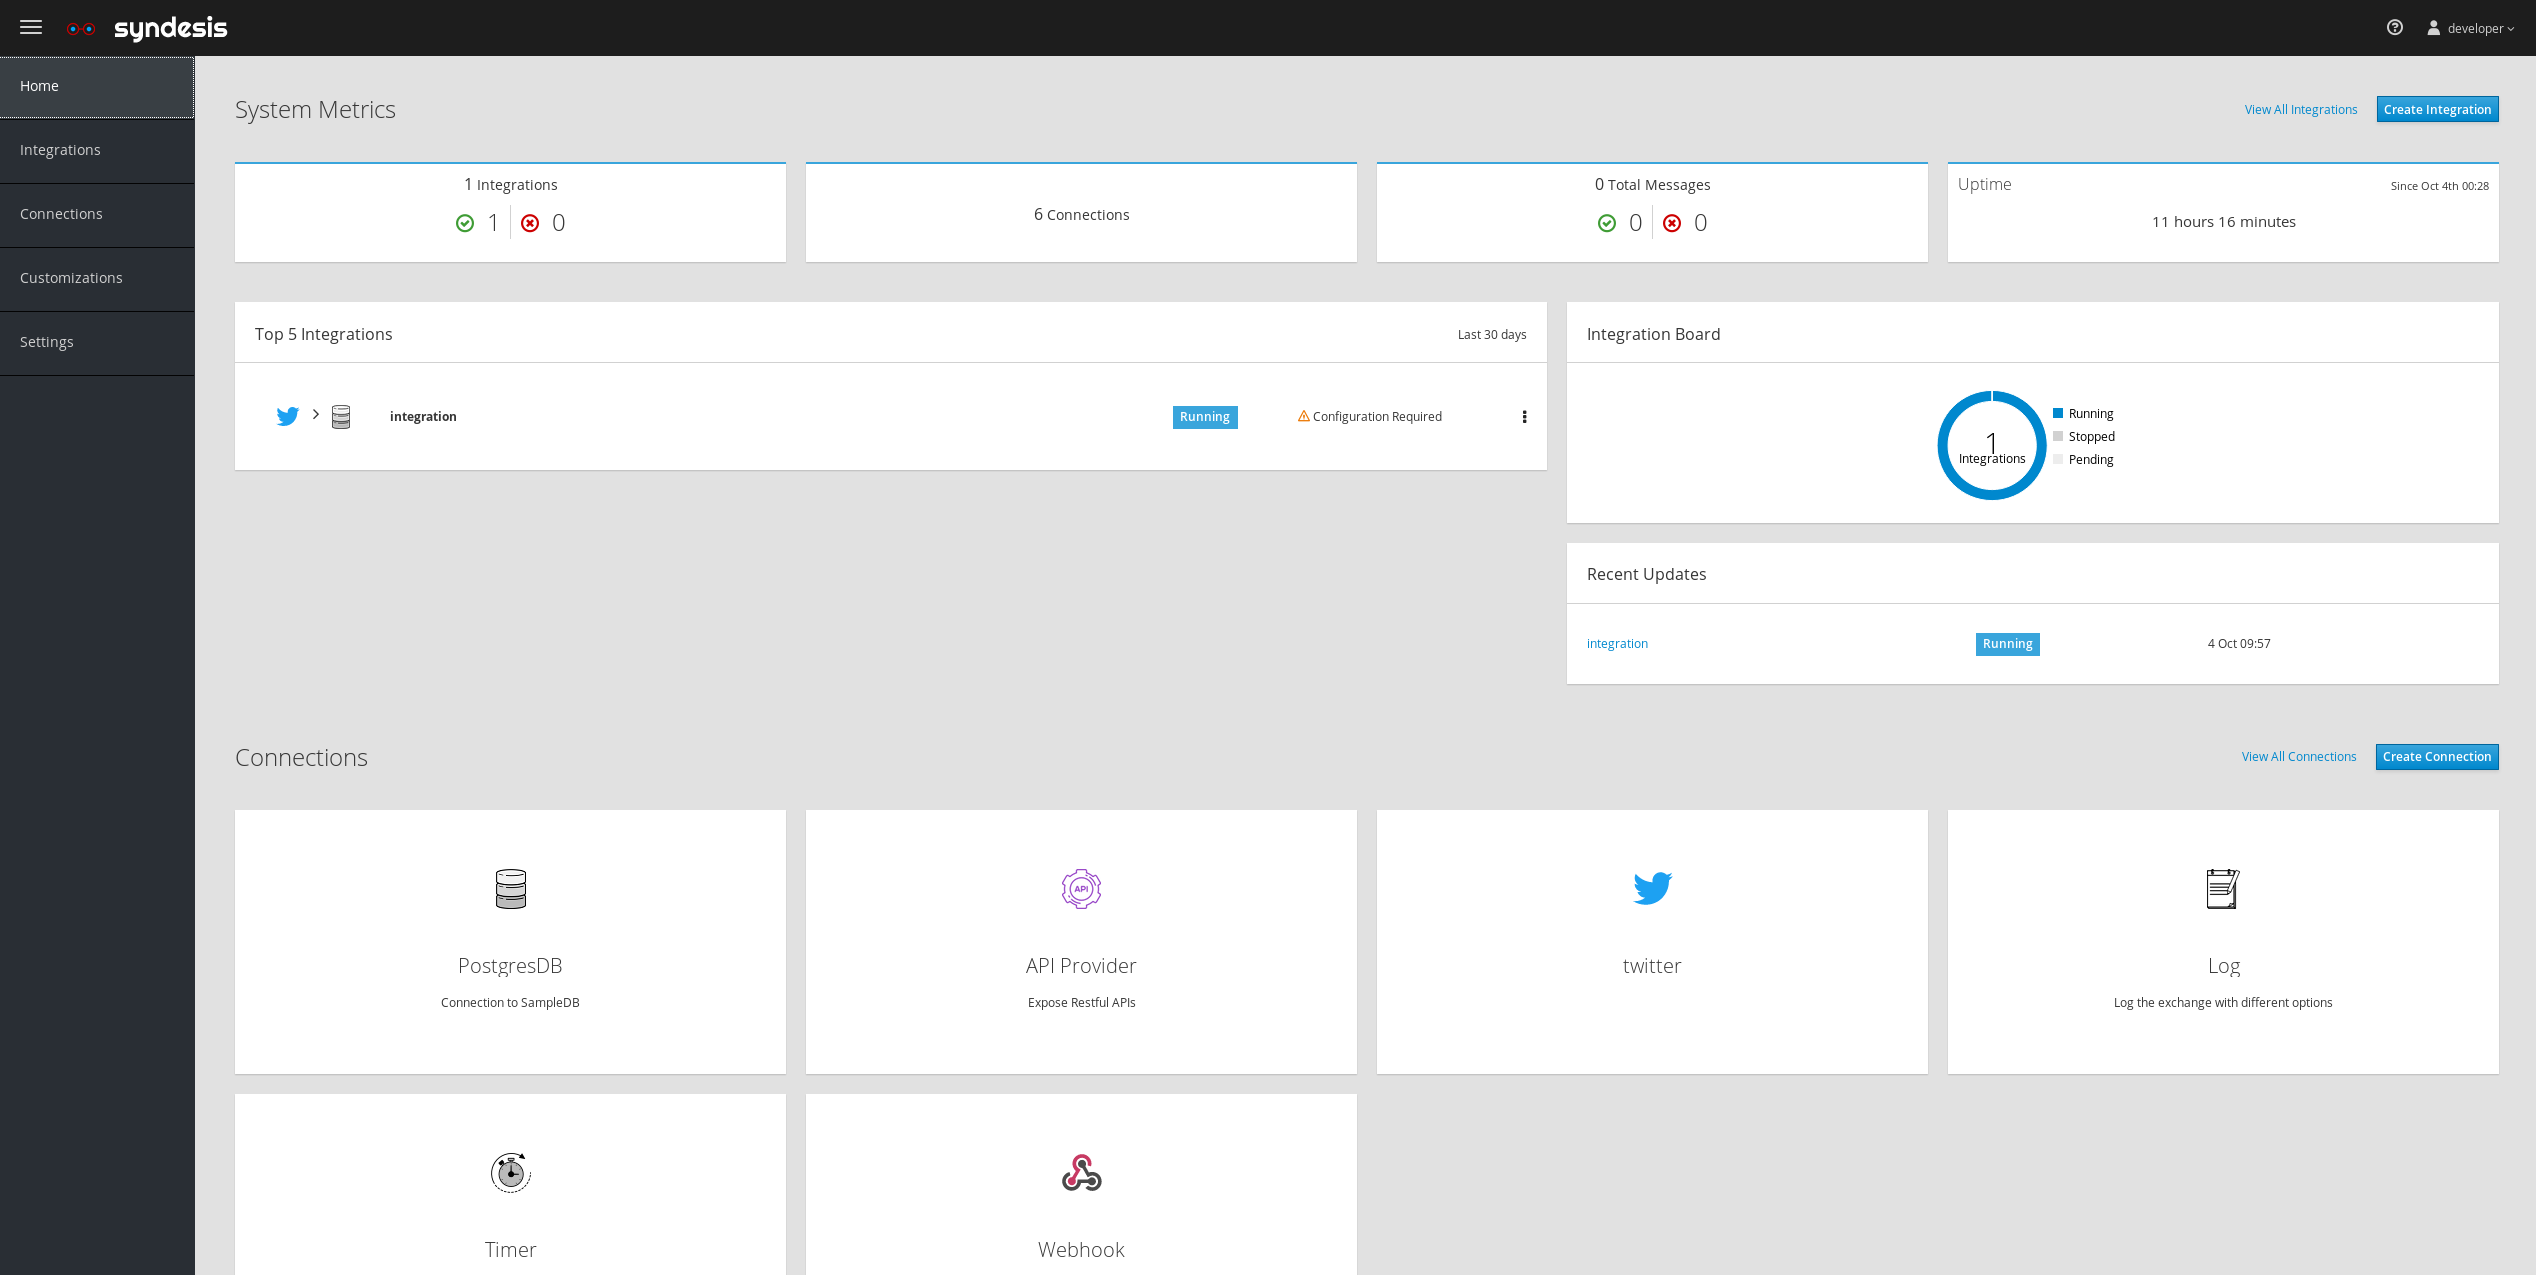 Syndesis dashboard